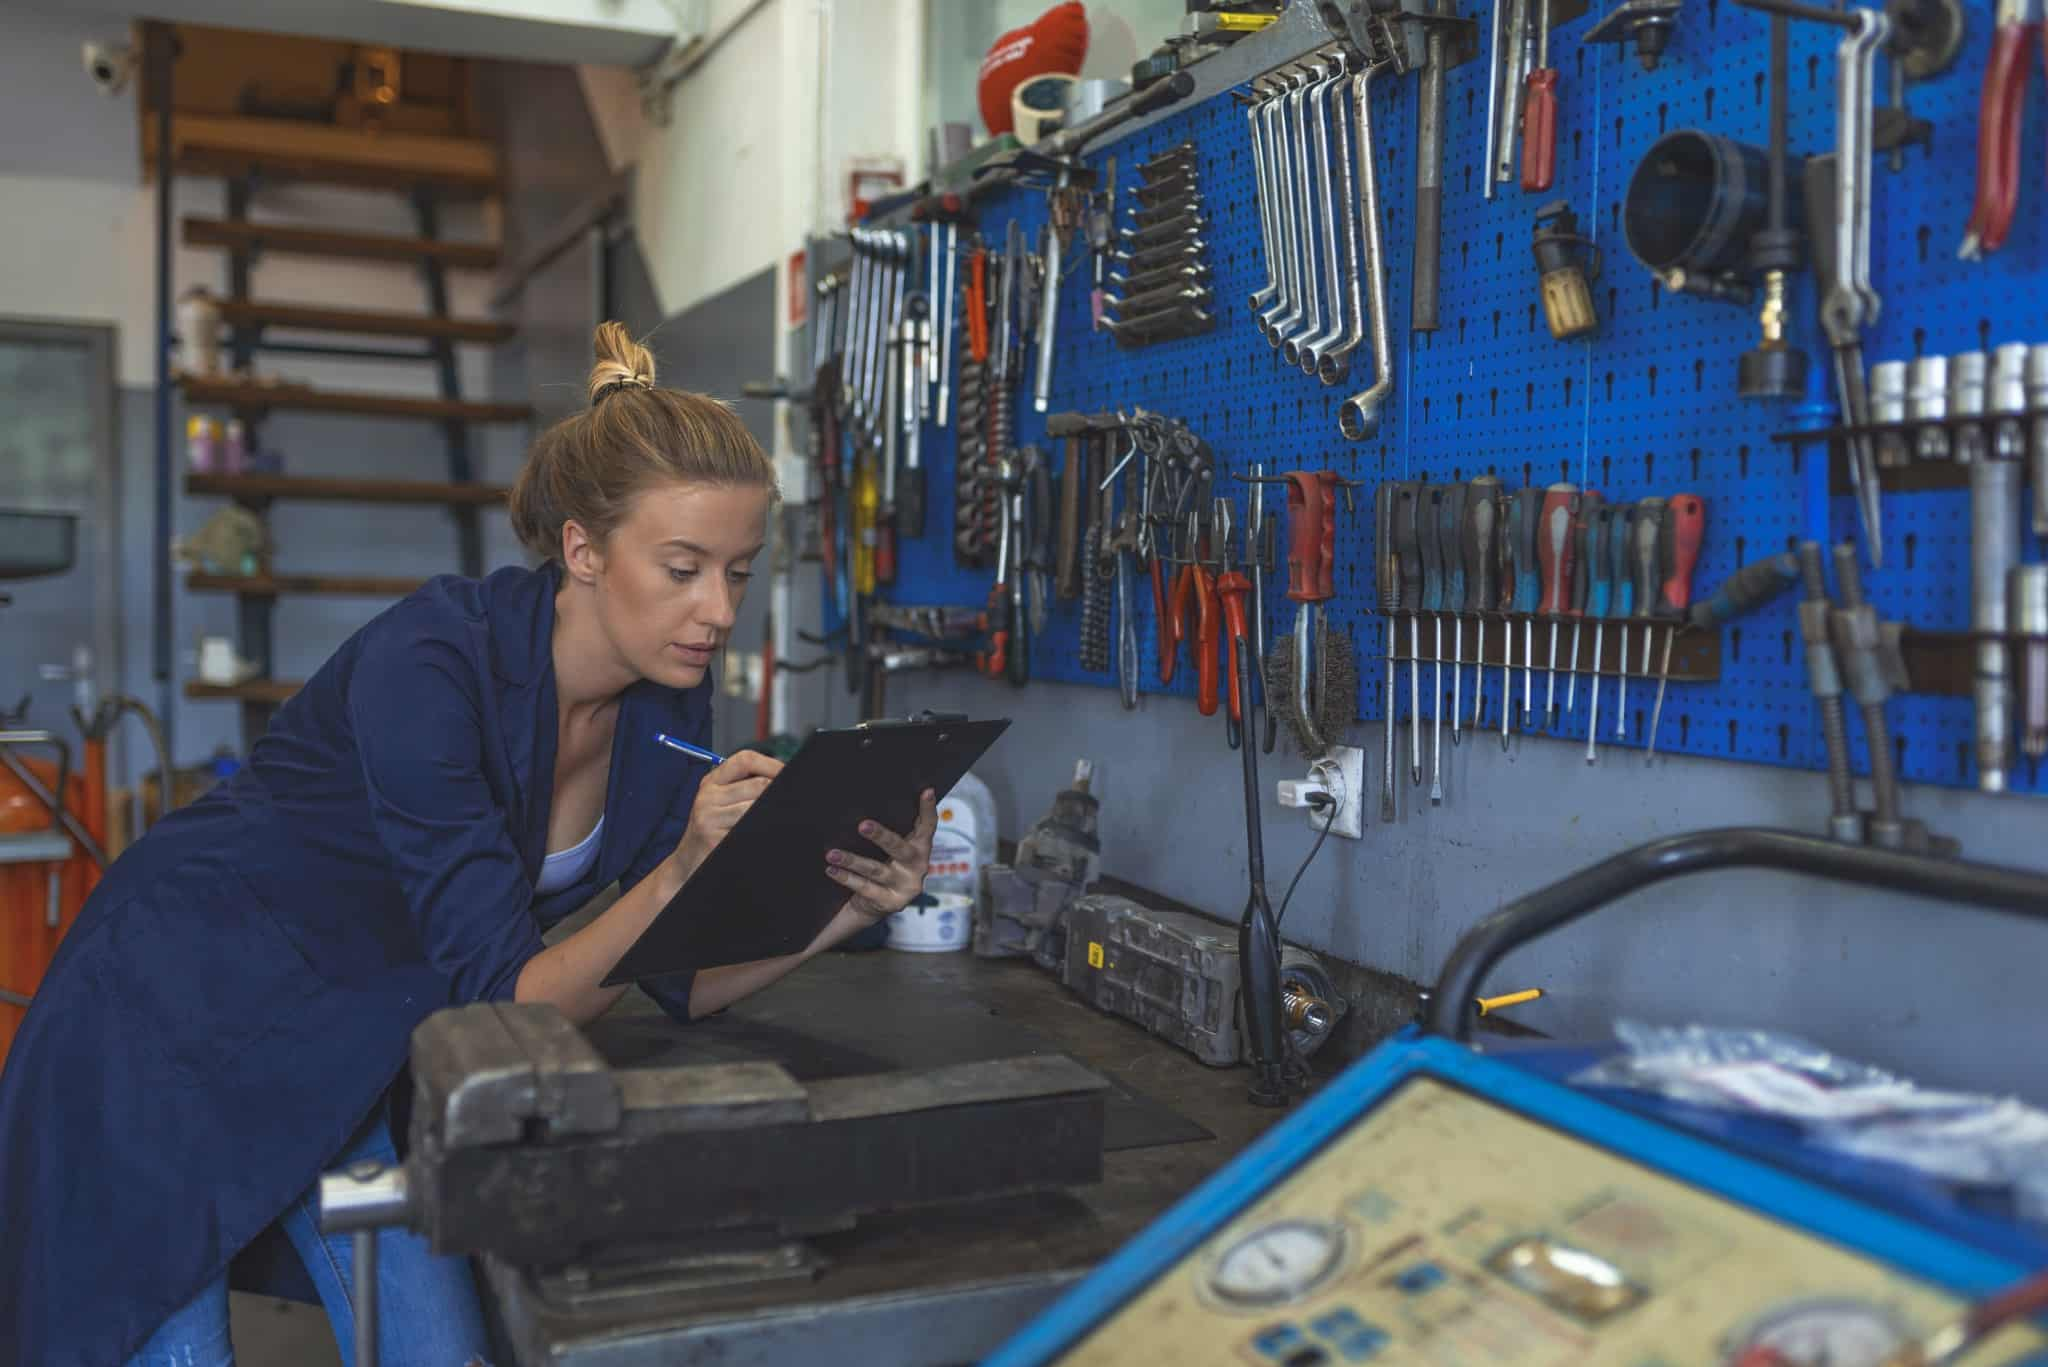 A woman takes inventory in an auto shop.